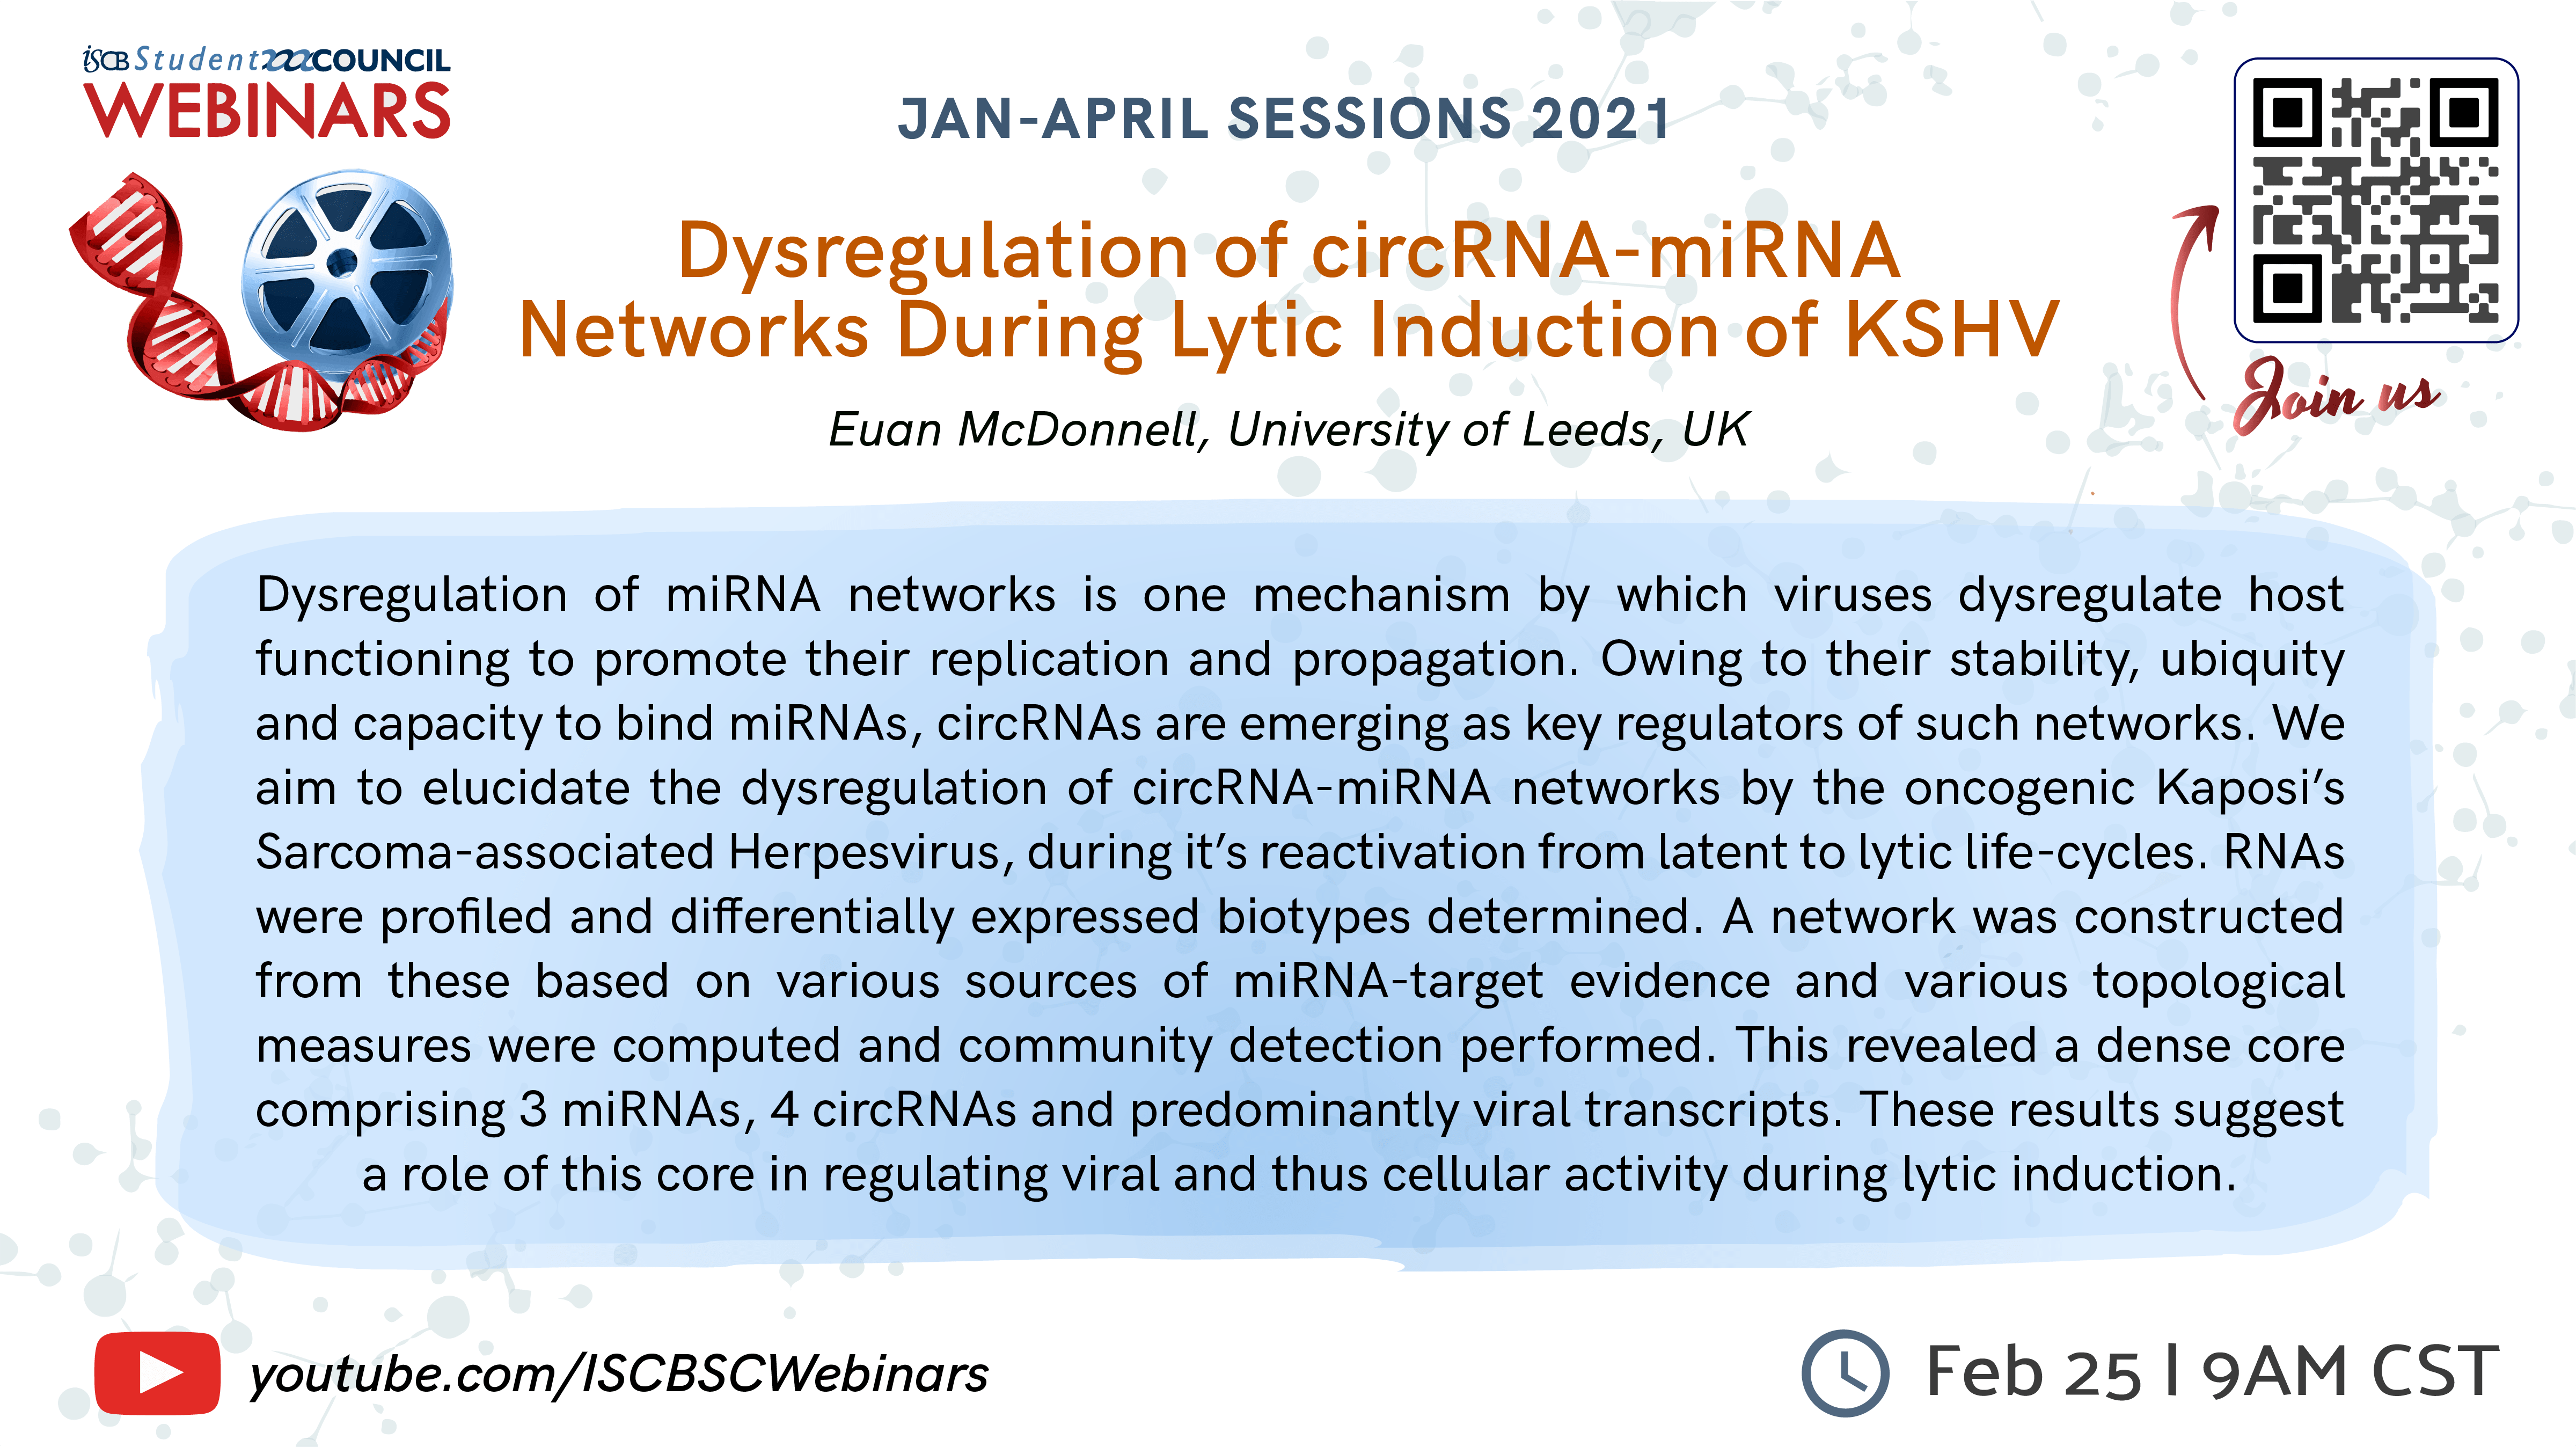 Euan McDonell: Dysregulation of circRNA-miRNA Networks During Lytic Induction of KSHV